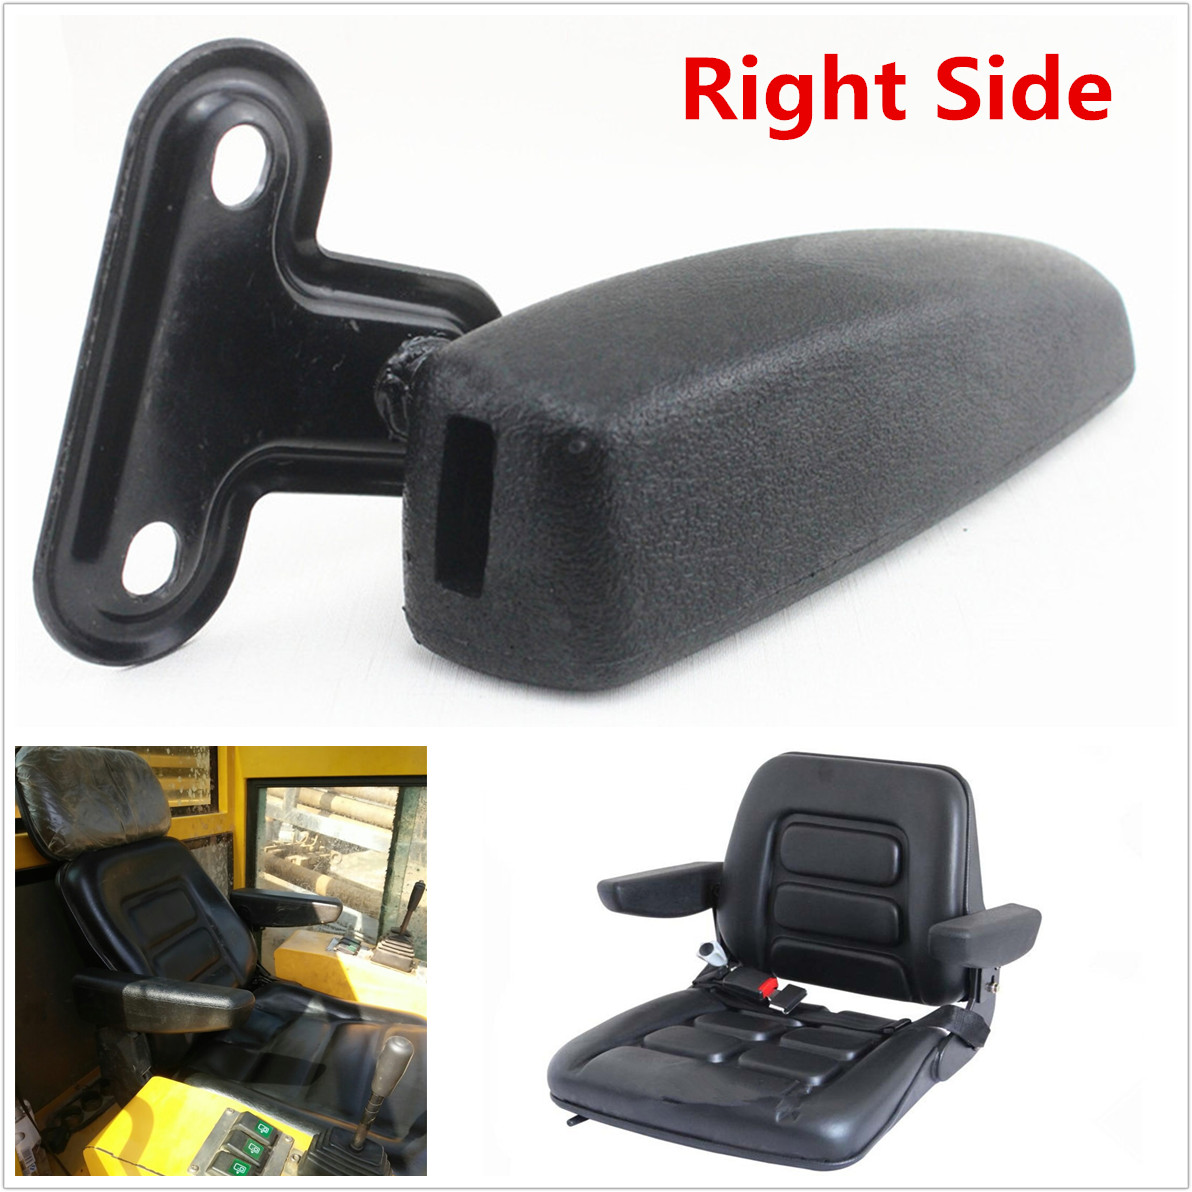 1 Pcs Comfortable Black PU Leather Left Side Autos Interior Armrest Arm Rest Kit